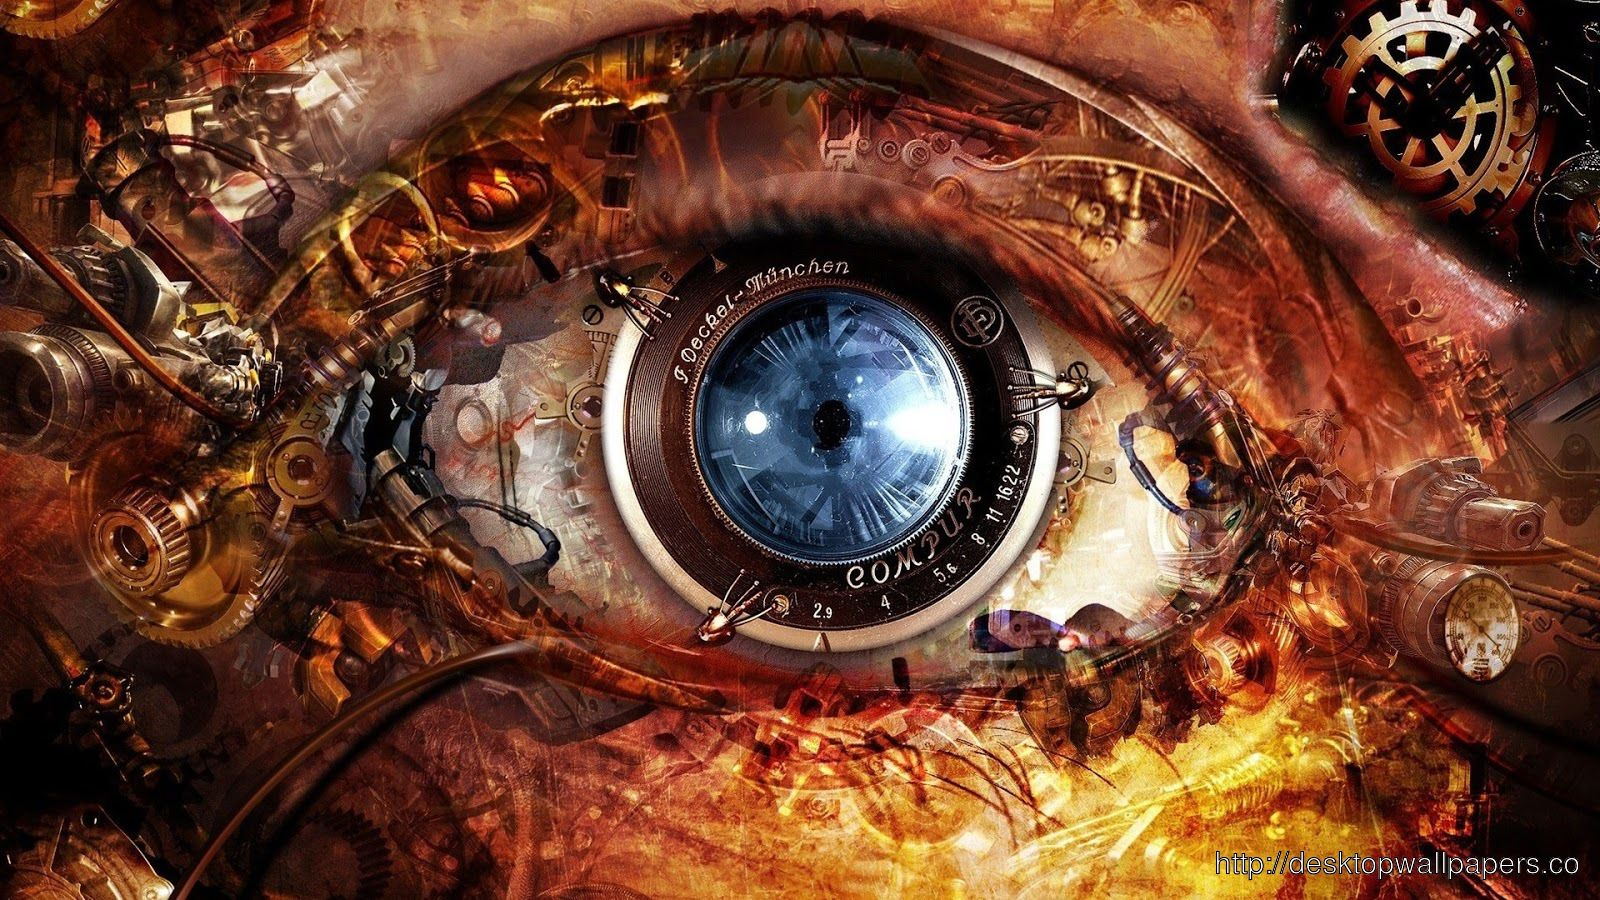 Wallpaper Collection 37 Best Free Hd 4k Desktop Backgrounds Background To Download Pc Mo In 2020 Steampunk Wallpaper Steampunk Eye Eyes Wallpaper